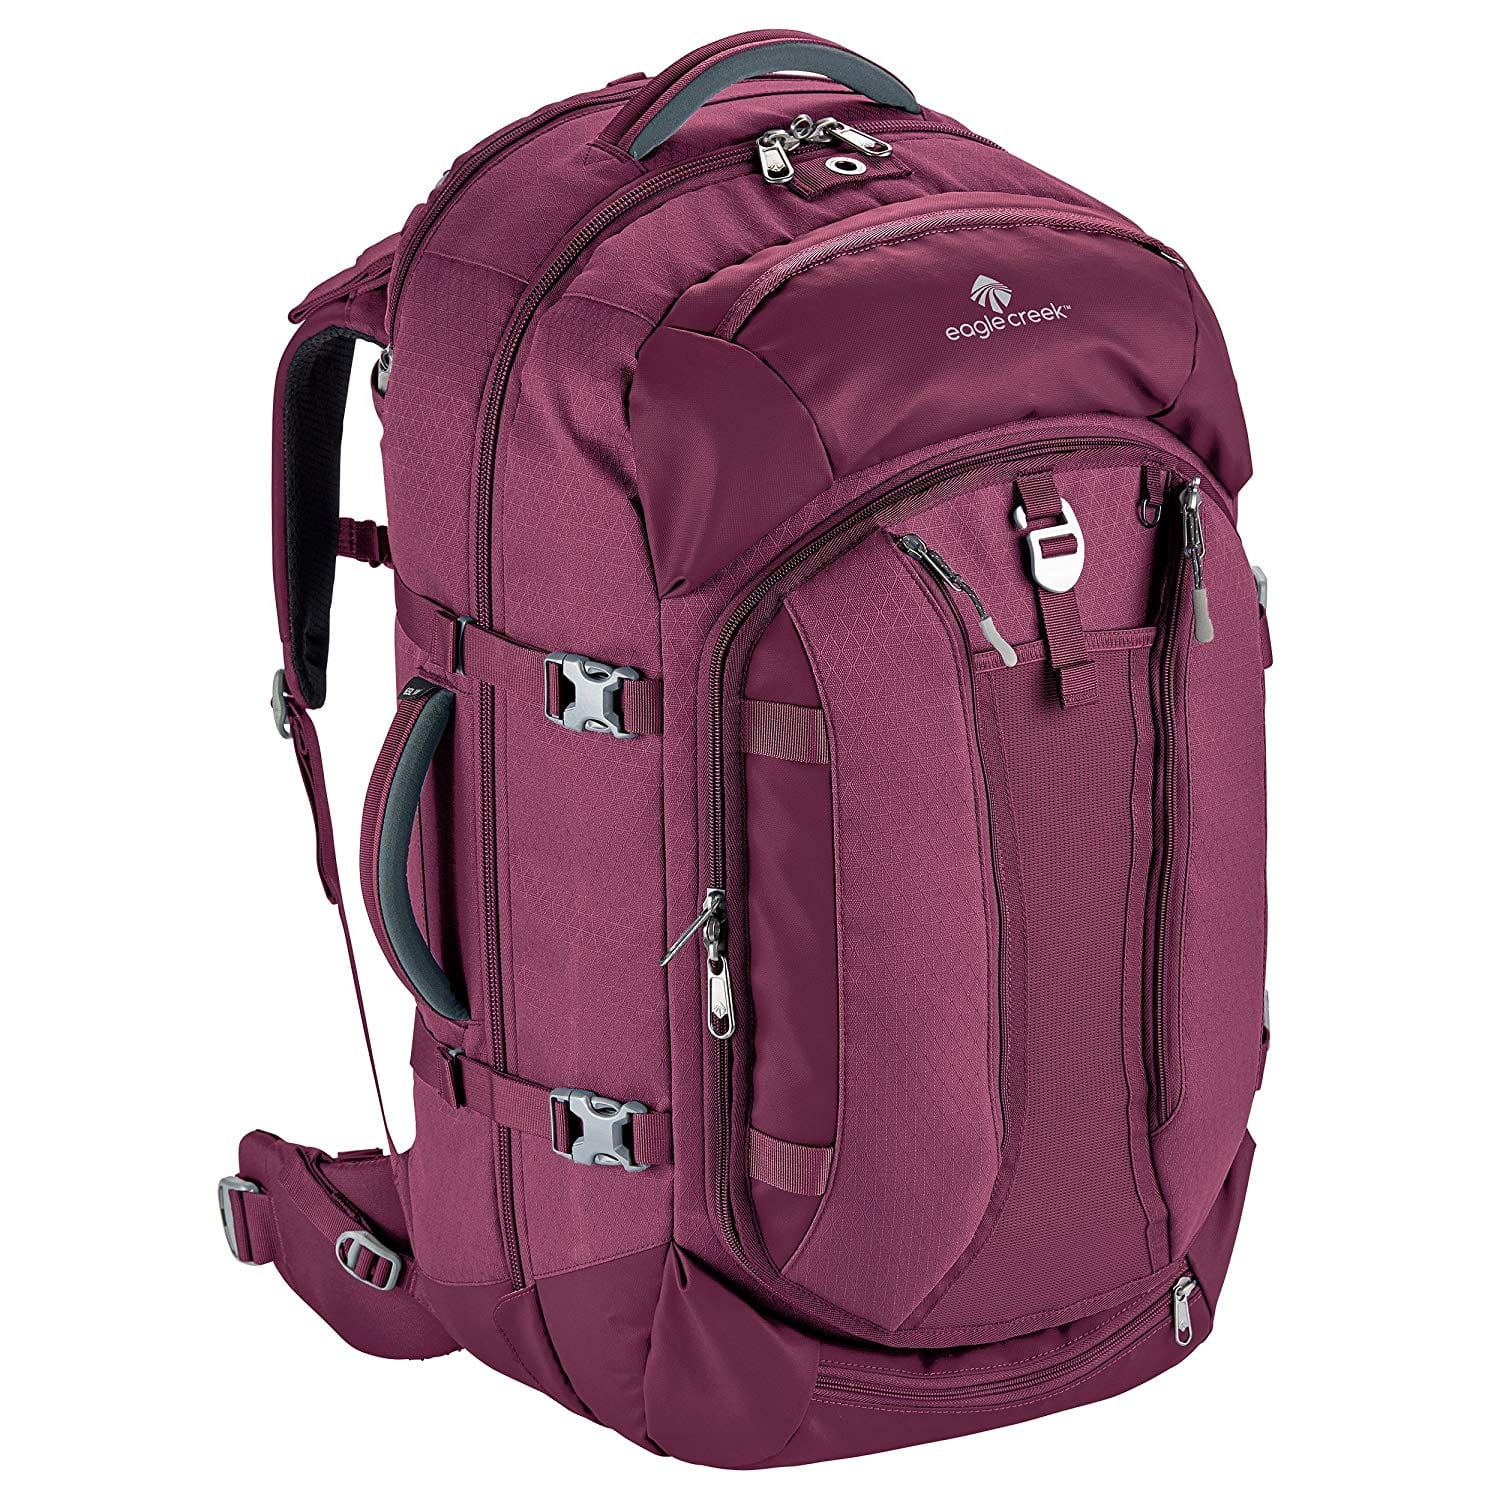 Eagle Creek Women's Multiuse 65l Backpack Travel Water Resistant-17in Laptop for $69.95